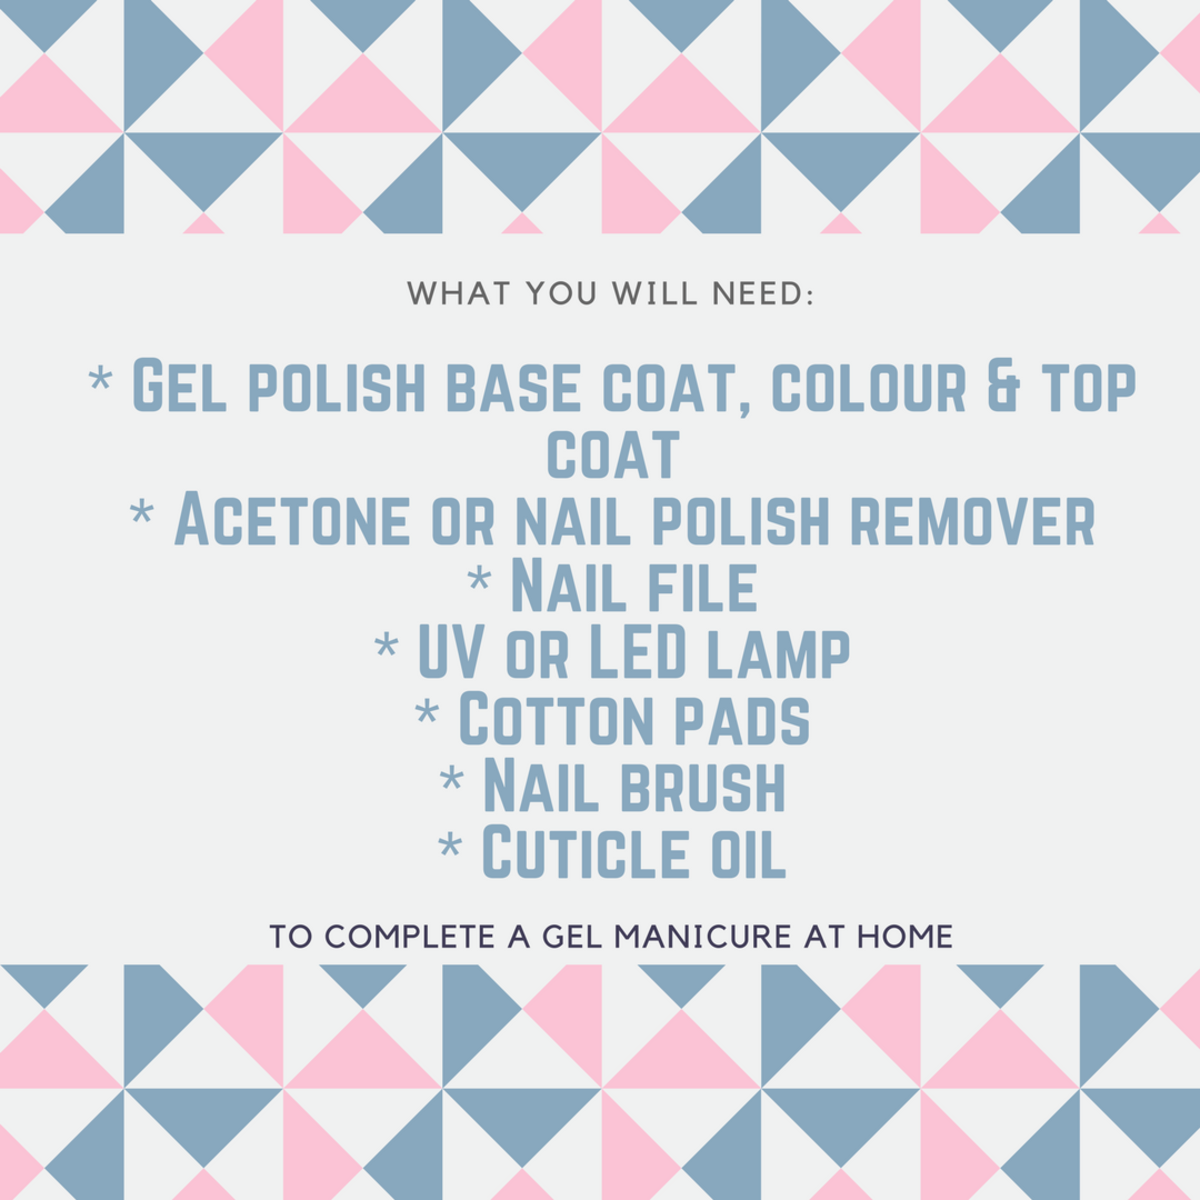 Gel Nail Polish How To: How To Do A Gel Polish Manicure At Home